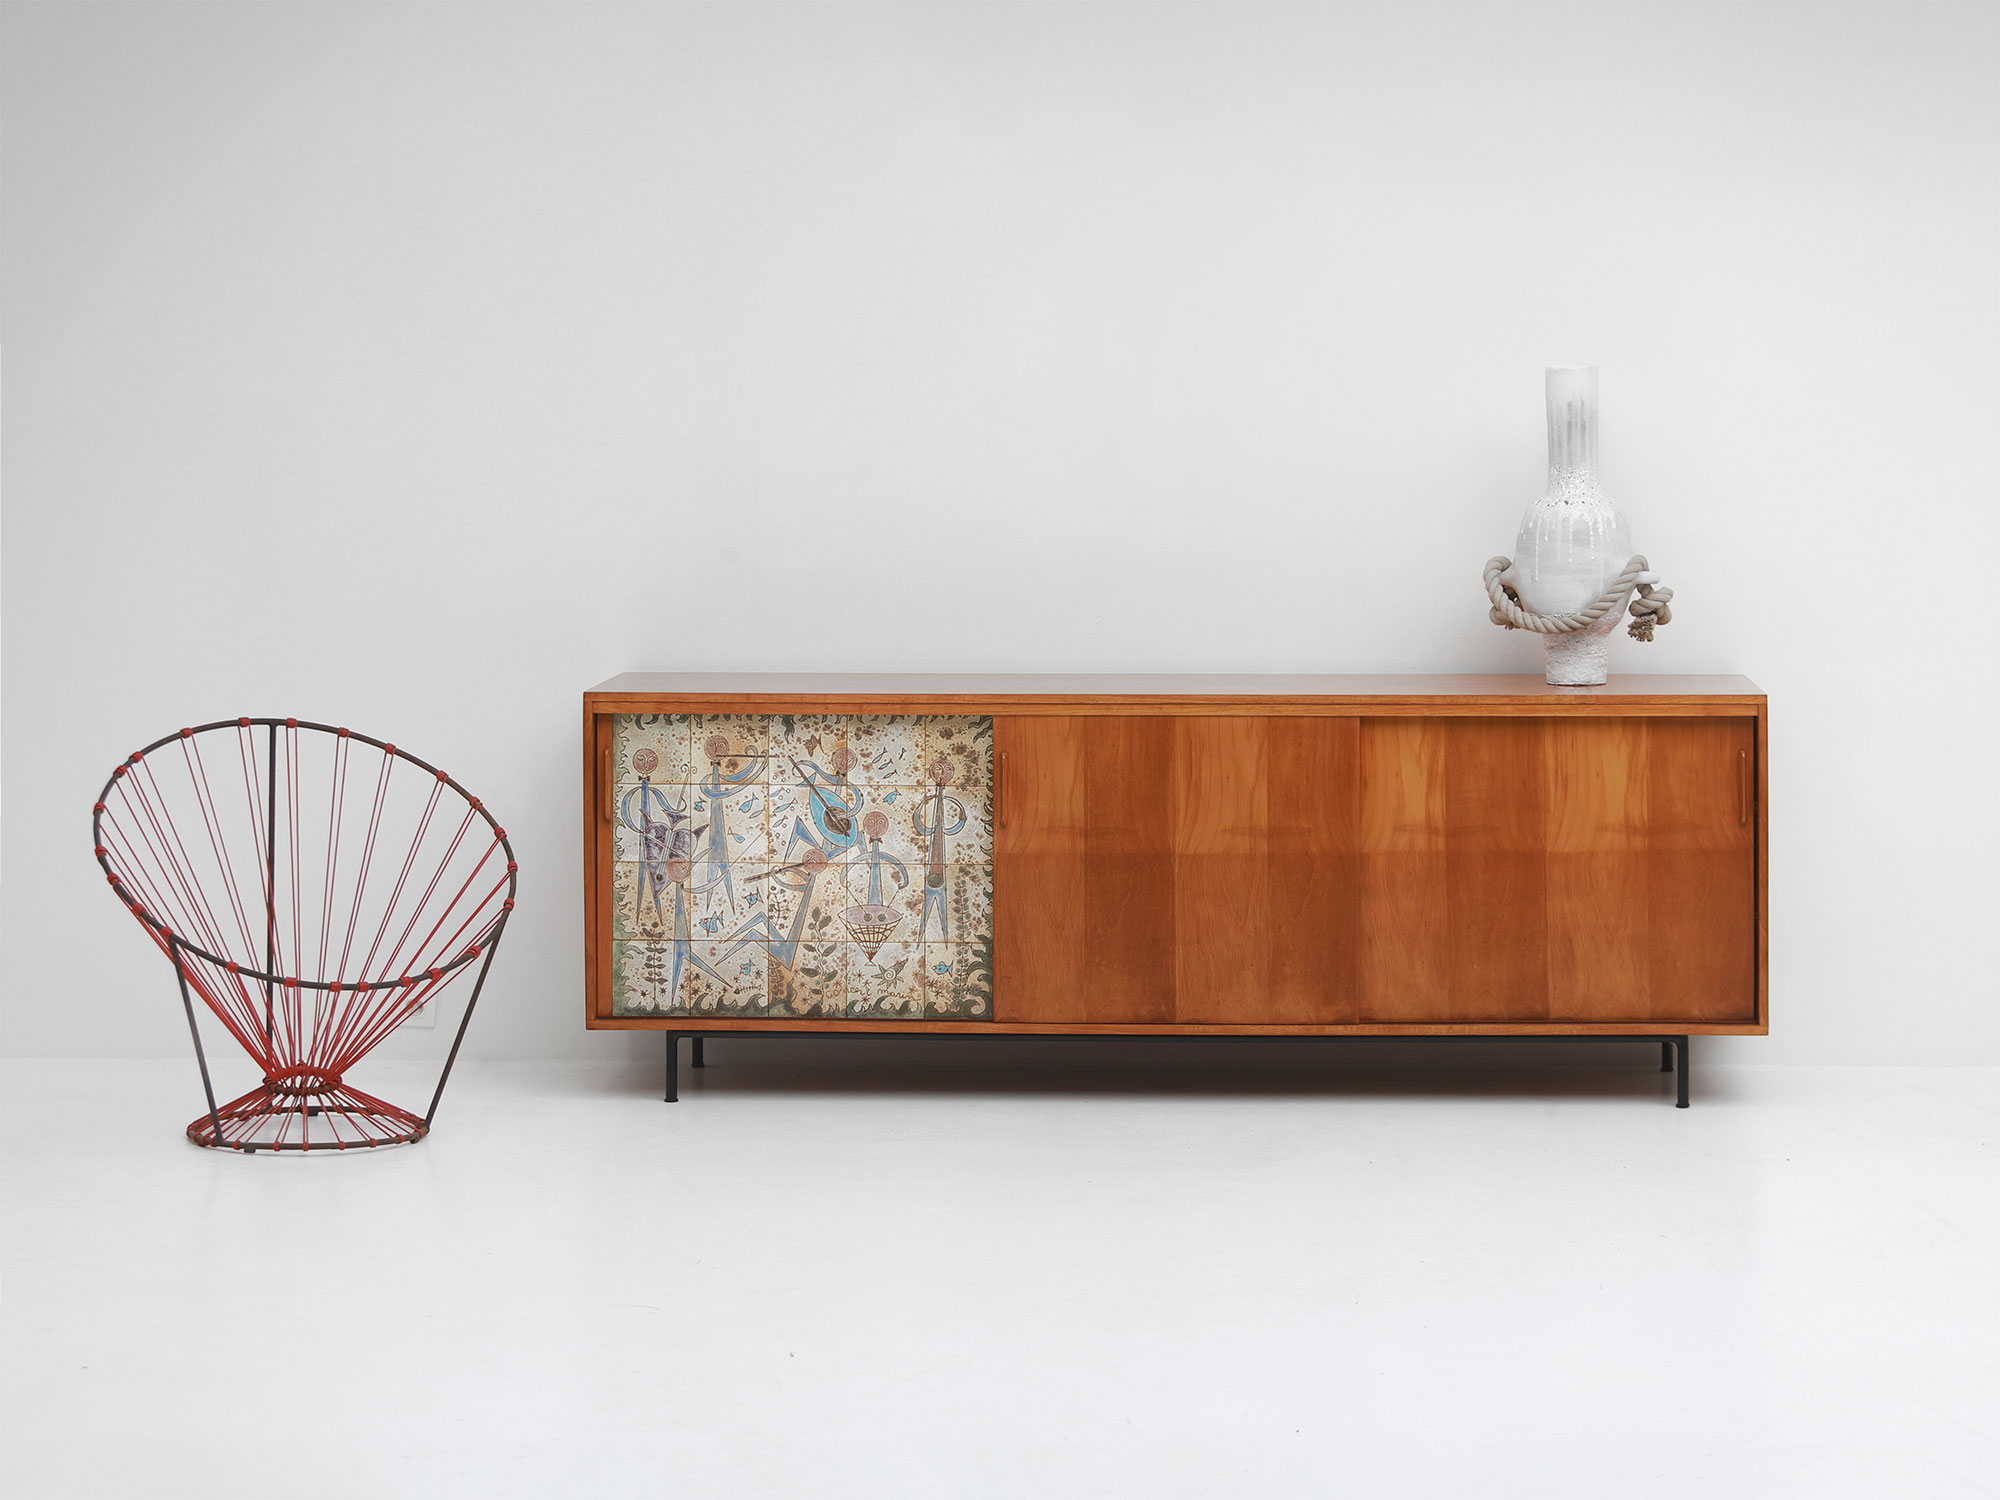 Sideboard with Ceramic Tiles Charles-Emile Pinson 1958